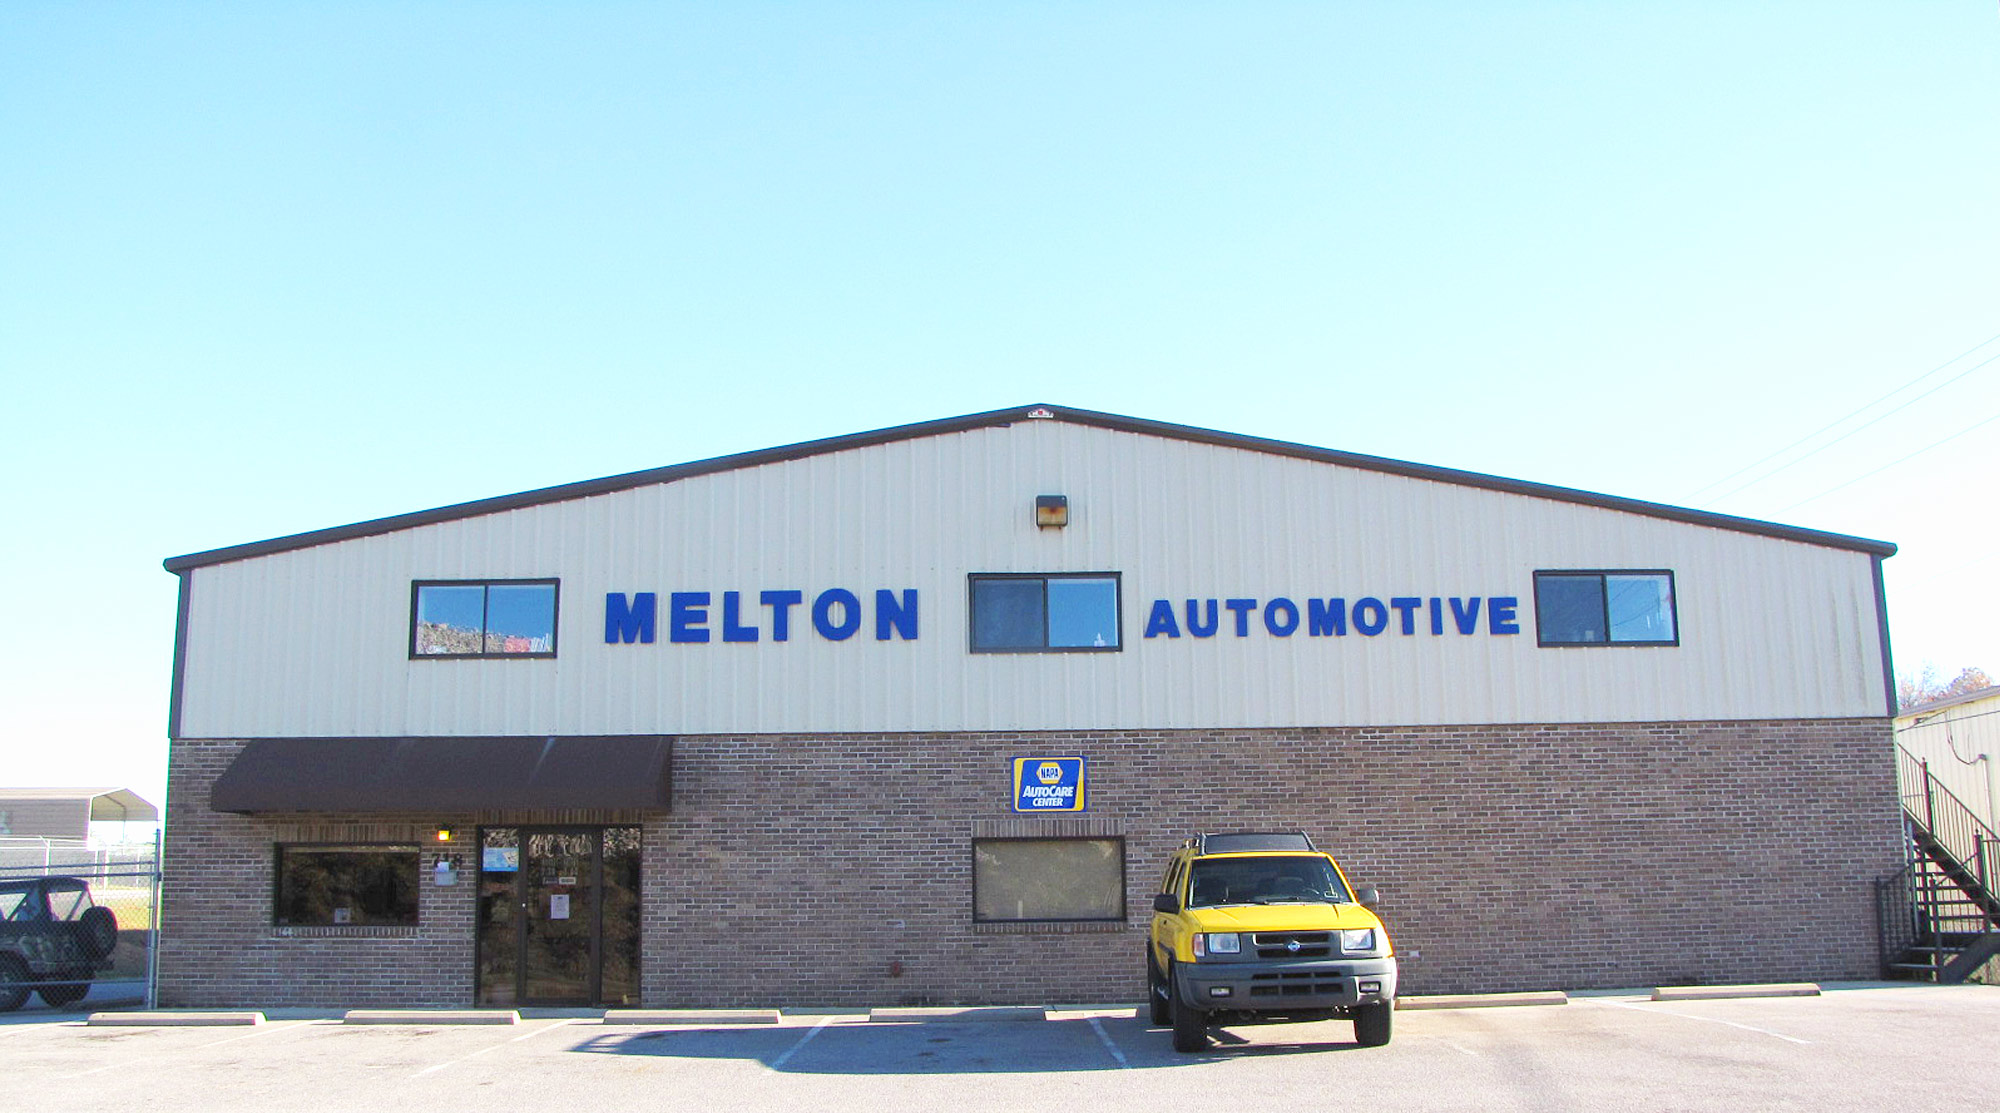 Melton Auto Repair Alabaster Alabama